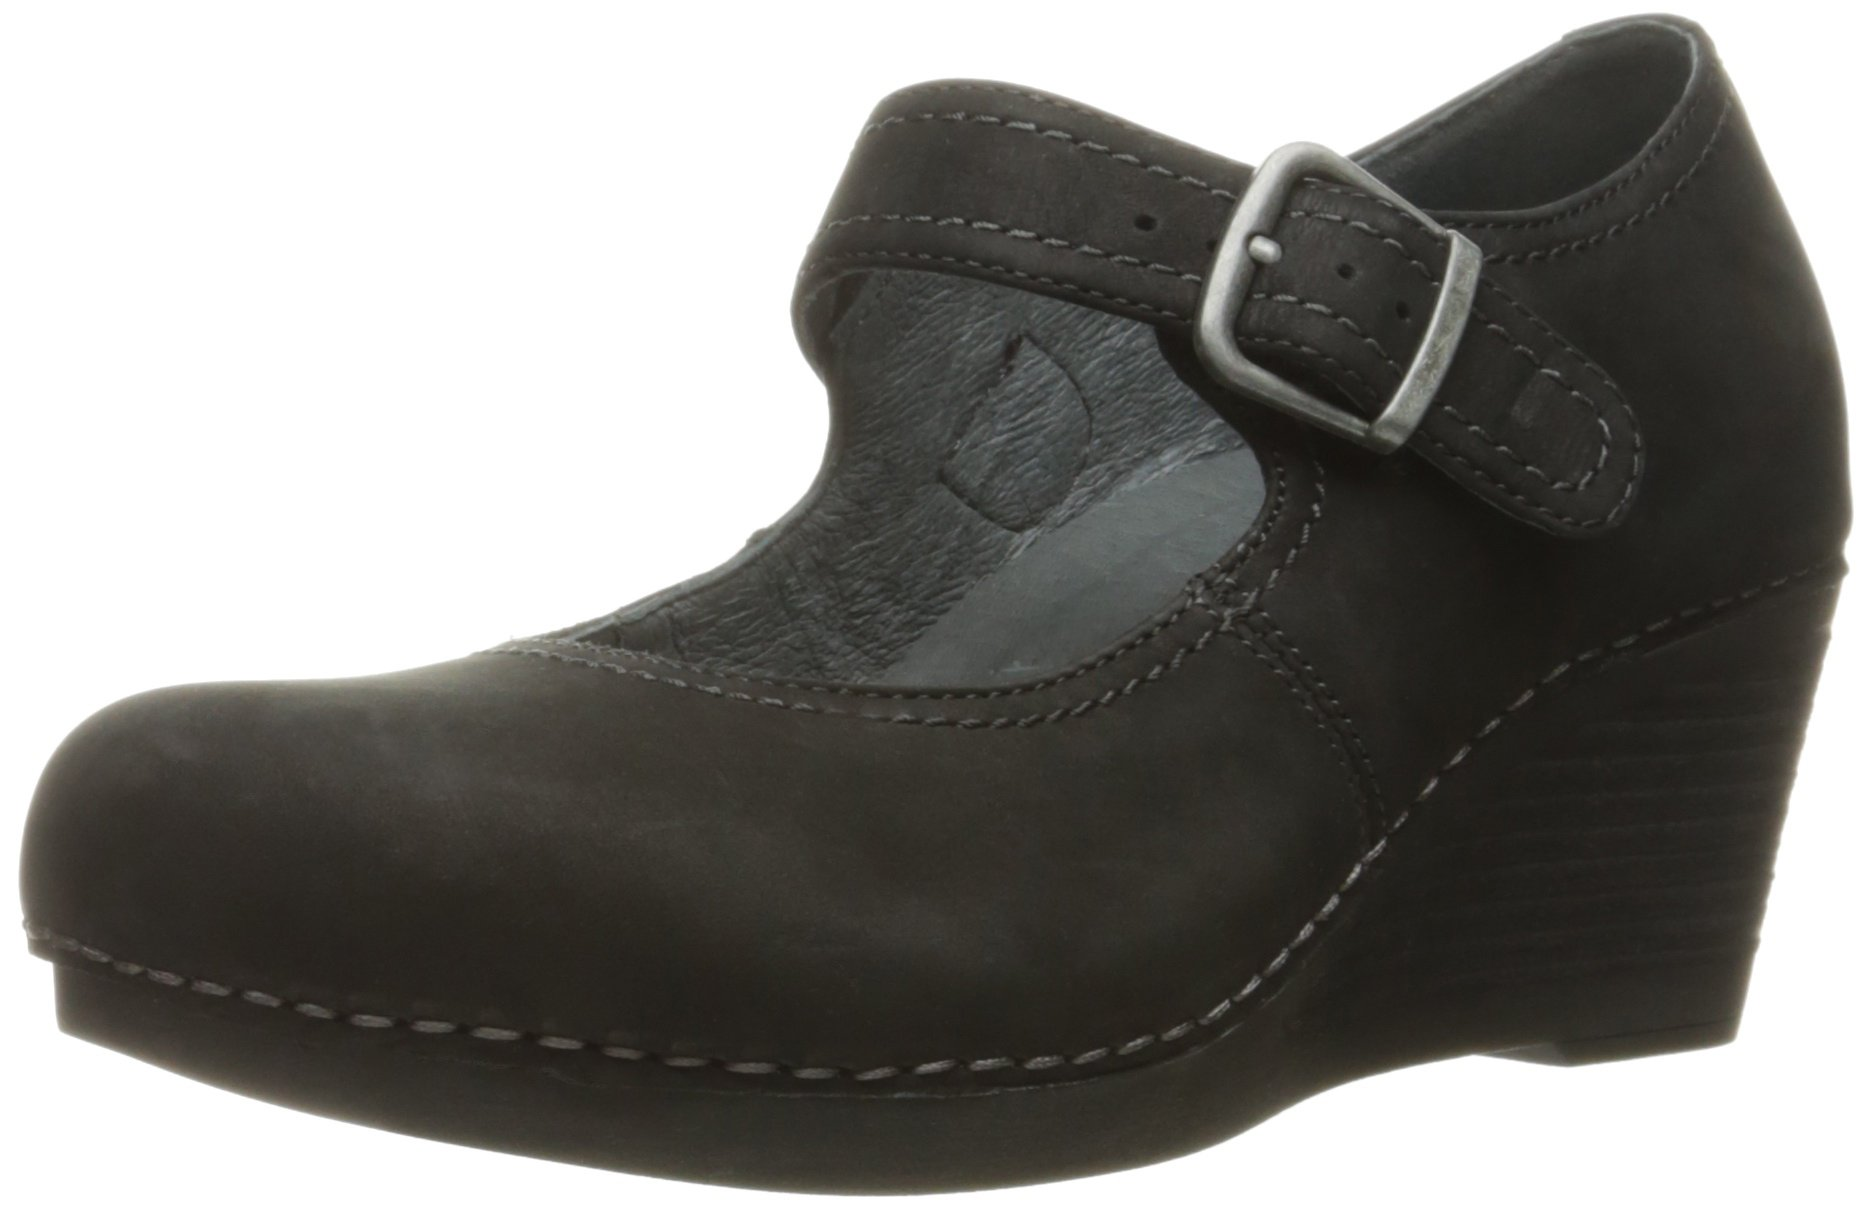 Dansko Women's Sandra Wedge Pump, Black Nubuck, 37 EU/6.5-7 M US